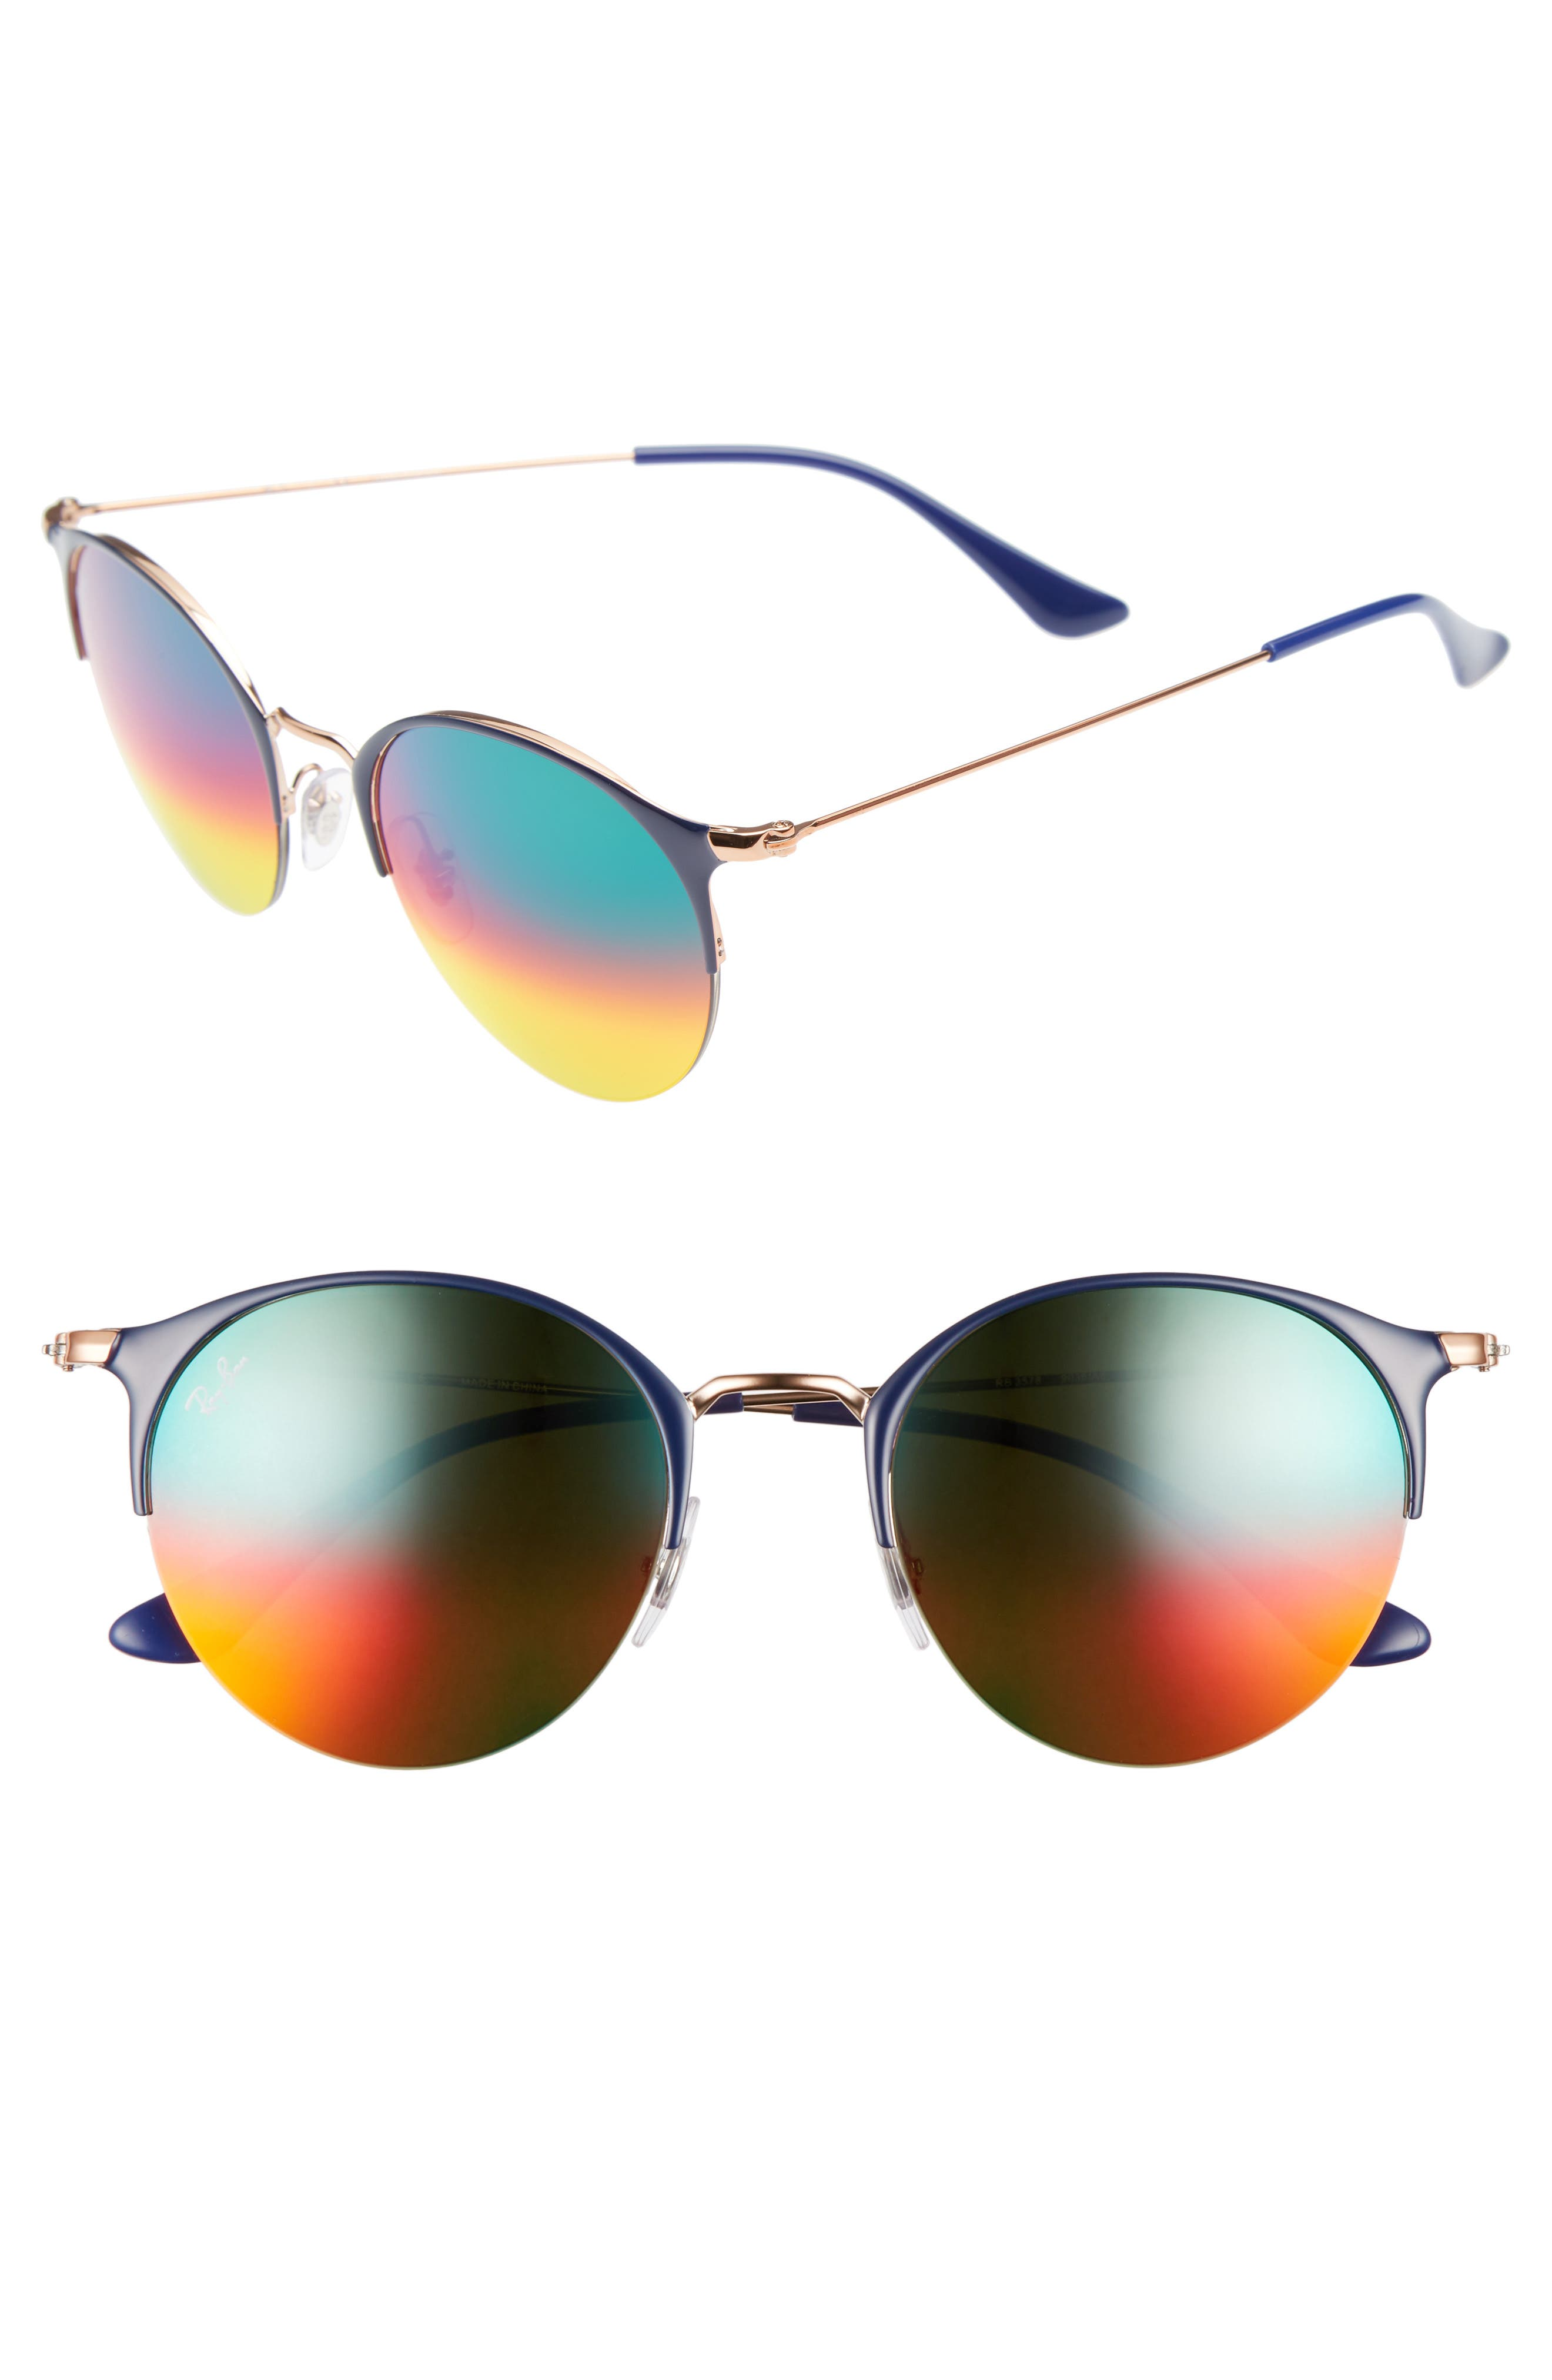 50mm Round Sunglasses,                         Main,                         color, GOLD BLUE/ BROWN MIRROR